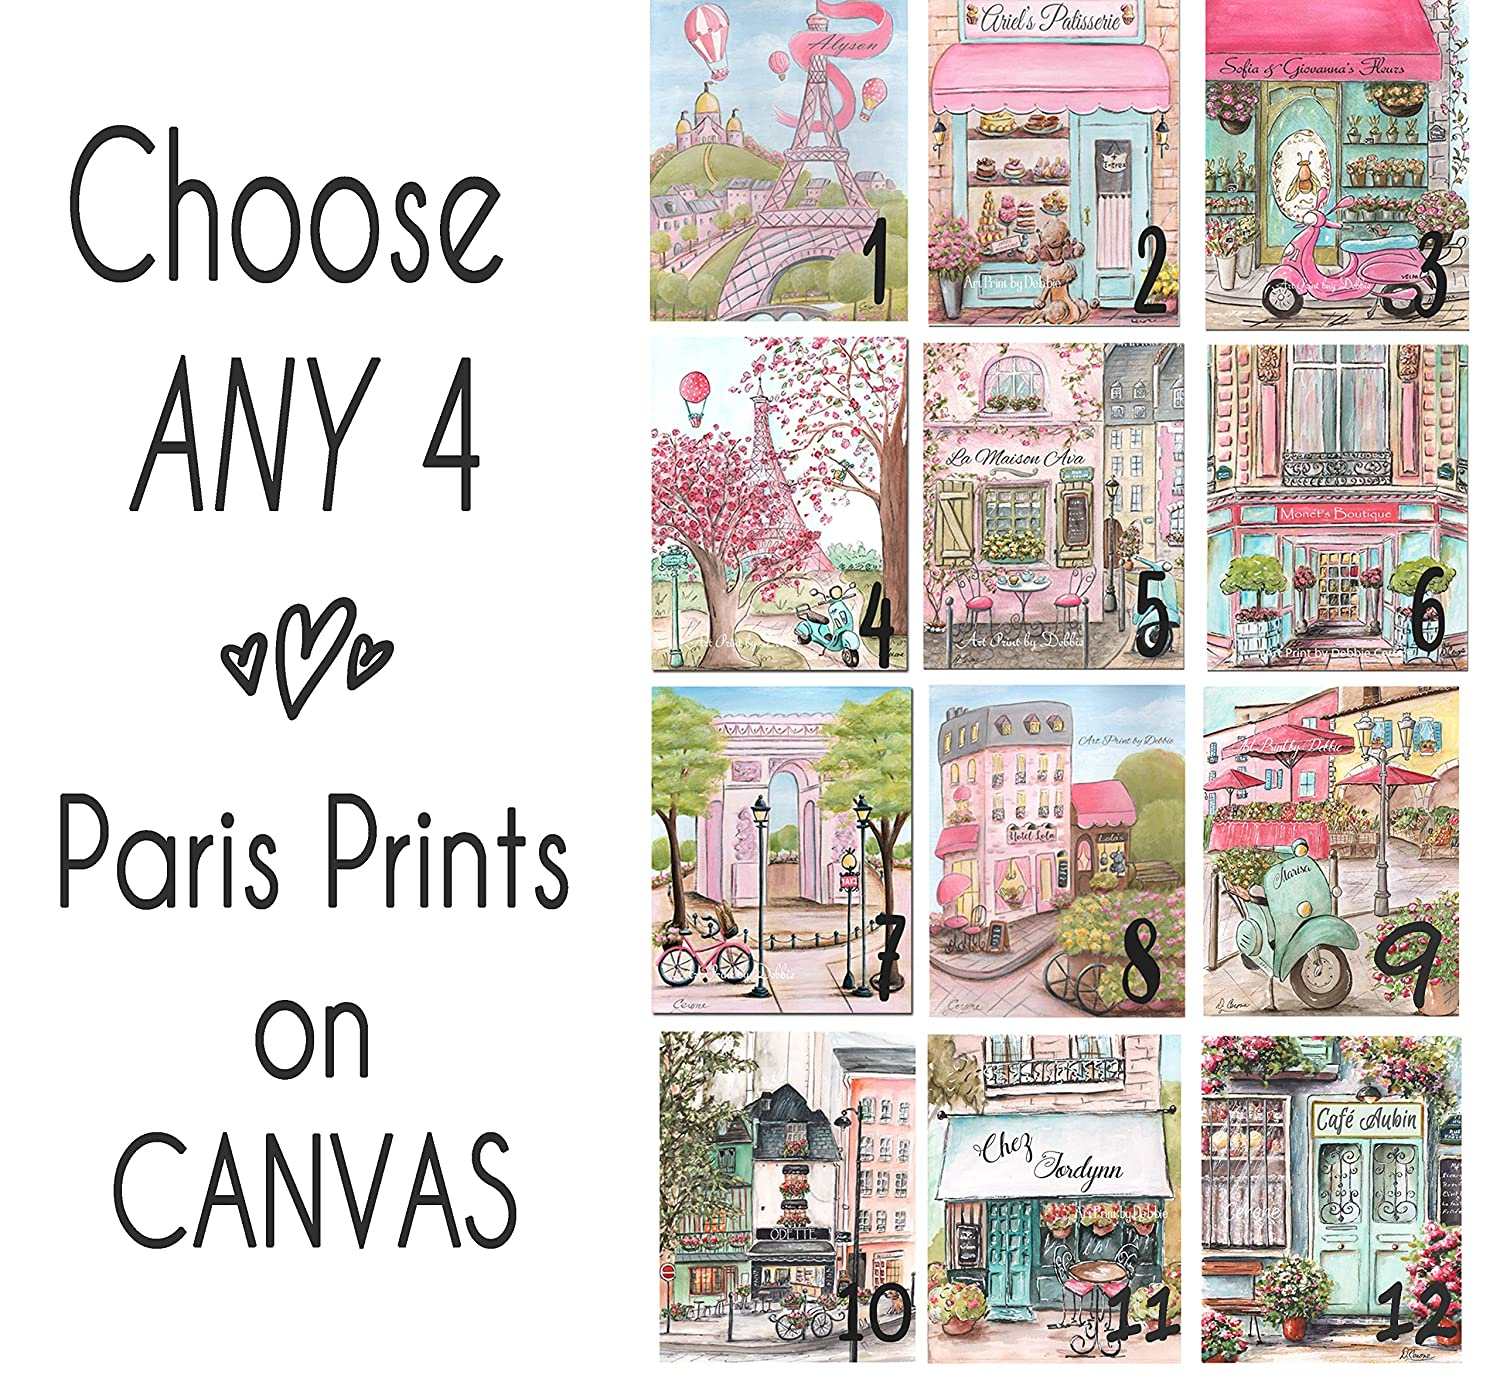 Image of Personalized Pink Paris Canvas Wall Art, Choose Any 4 Watercolor Prints, Girls Travel Theme Canvases With Custom Name & Font Choice, 8x10 to 24x36 Home and Kitchen